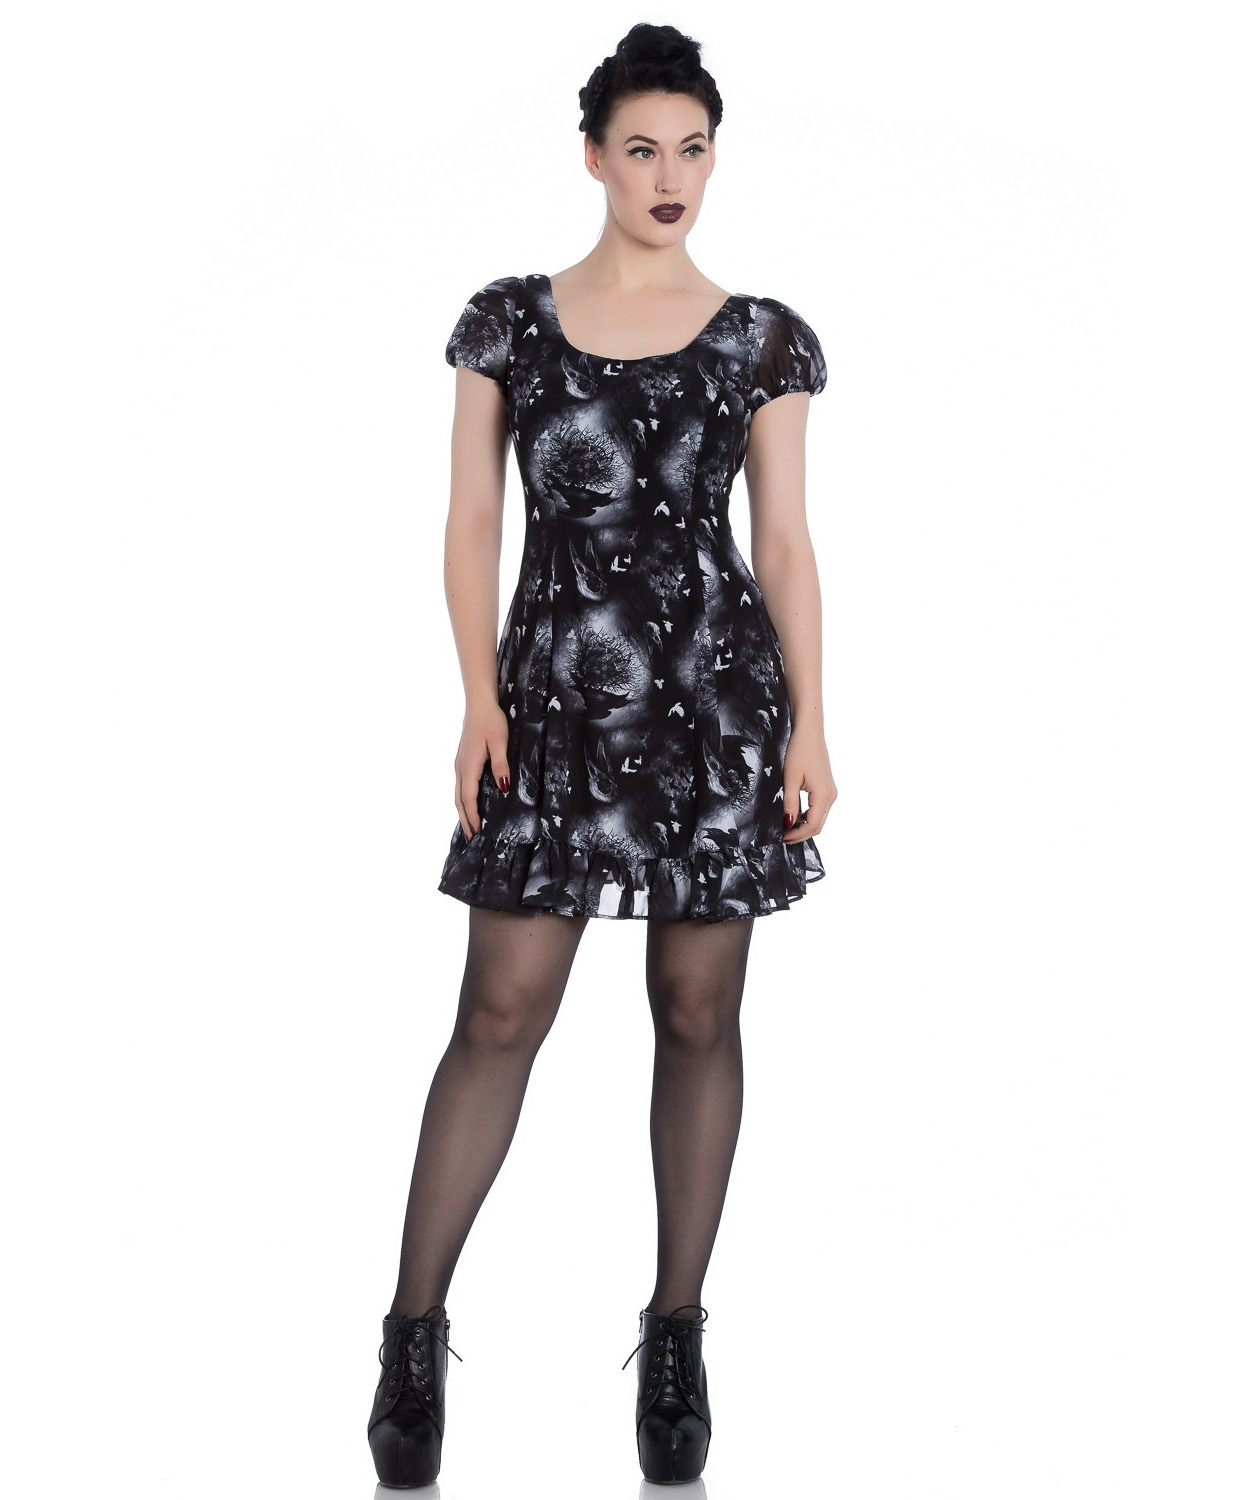 Hell-Bunny-Alchemy-Gothic-Black-Skater-Mini-Dress-ASH-Crows-Skulls-All-Sizes thumbnail 11